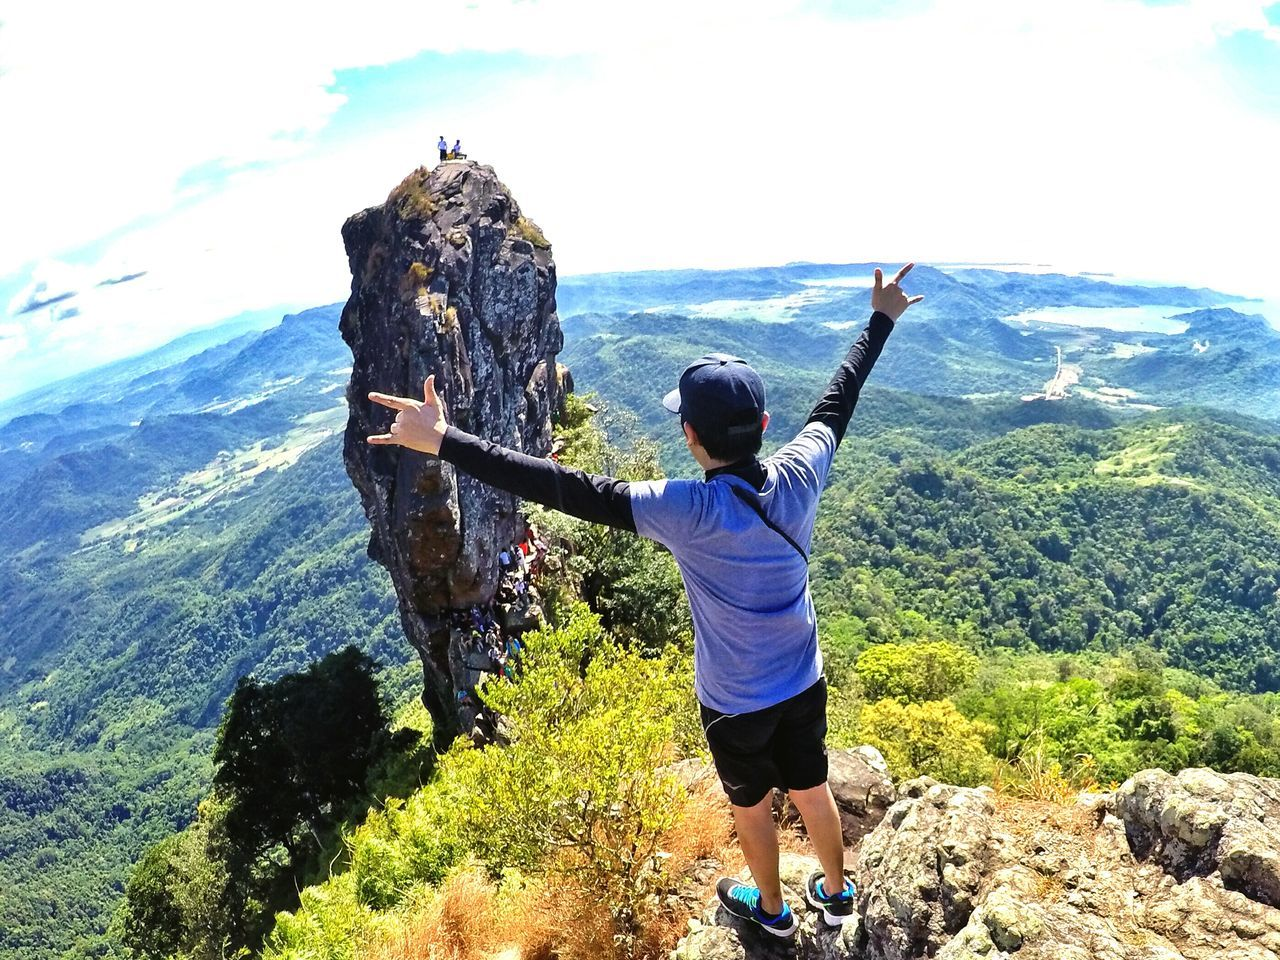 High Angle View Of Man With Arms Outstretched On Mountain Against Sky